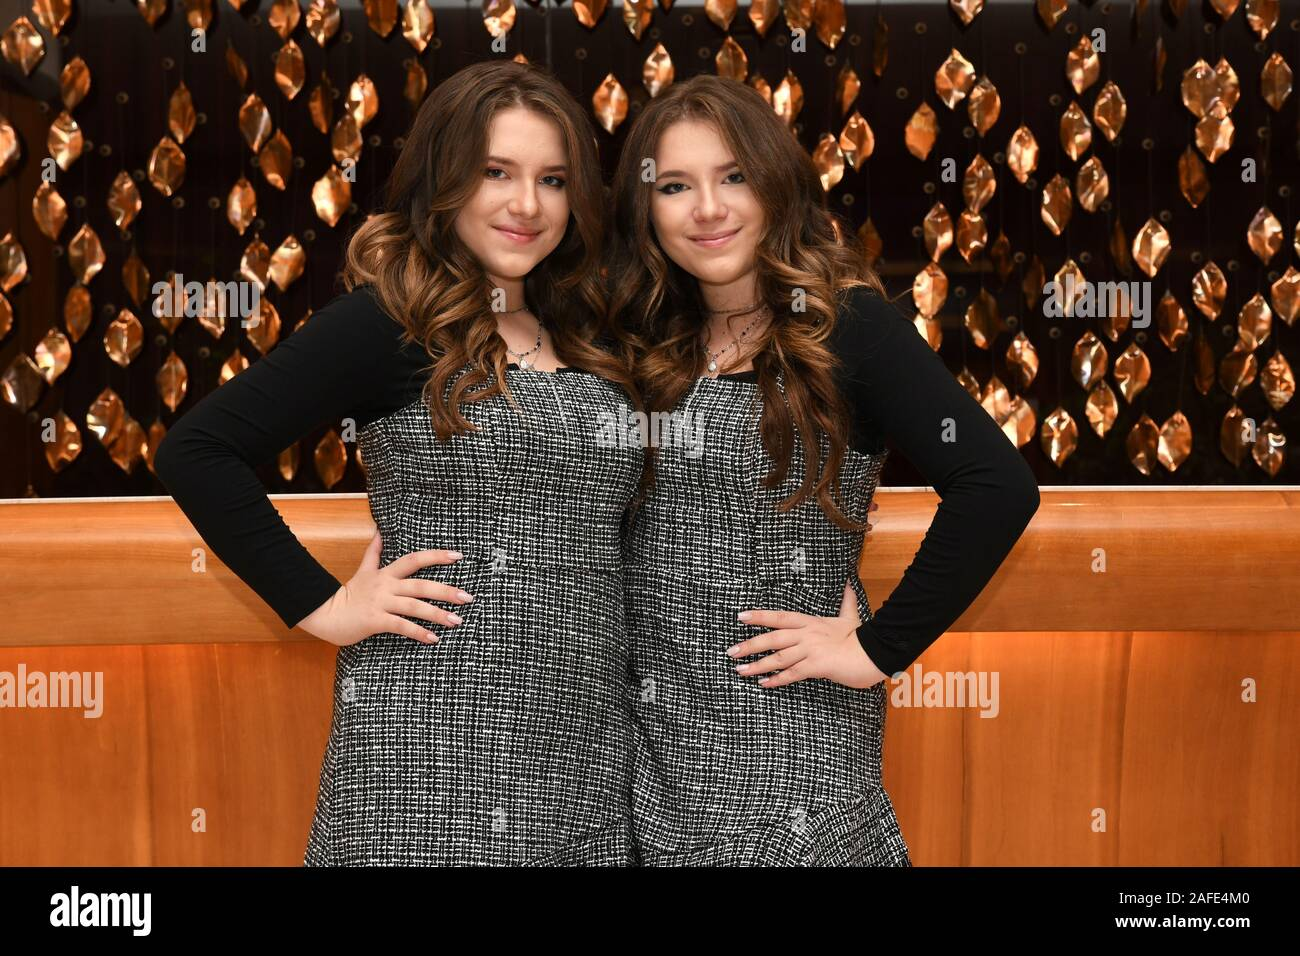 ***Minimum fee £40/$40 per picture for online use*** Bianca and Chiara D'ambrosio, better known as the D'ambrosio Twins pose for portraits at their hotel in Naples, Italy  Where: Naples, Italy When: 09 Nov 2019 Credit: IPA/WENN.com  **Only available for publication in UK, USA, Germany, Austria, Switzerland** Stock Photo